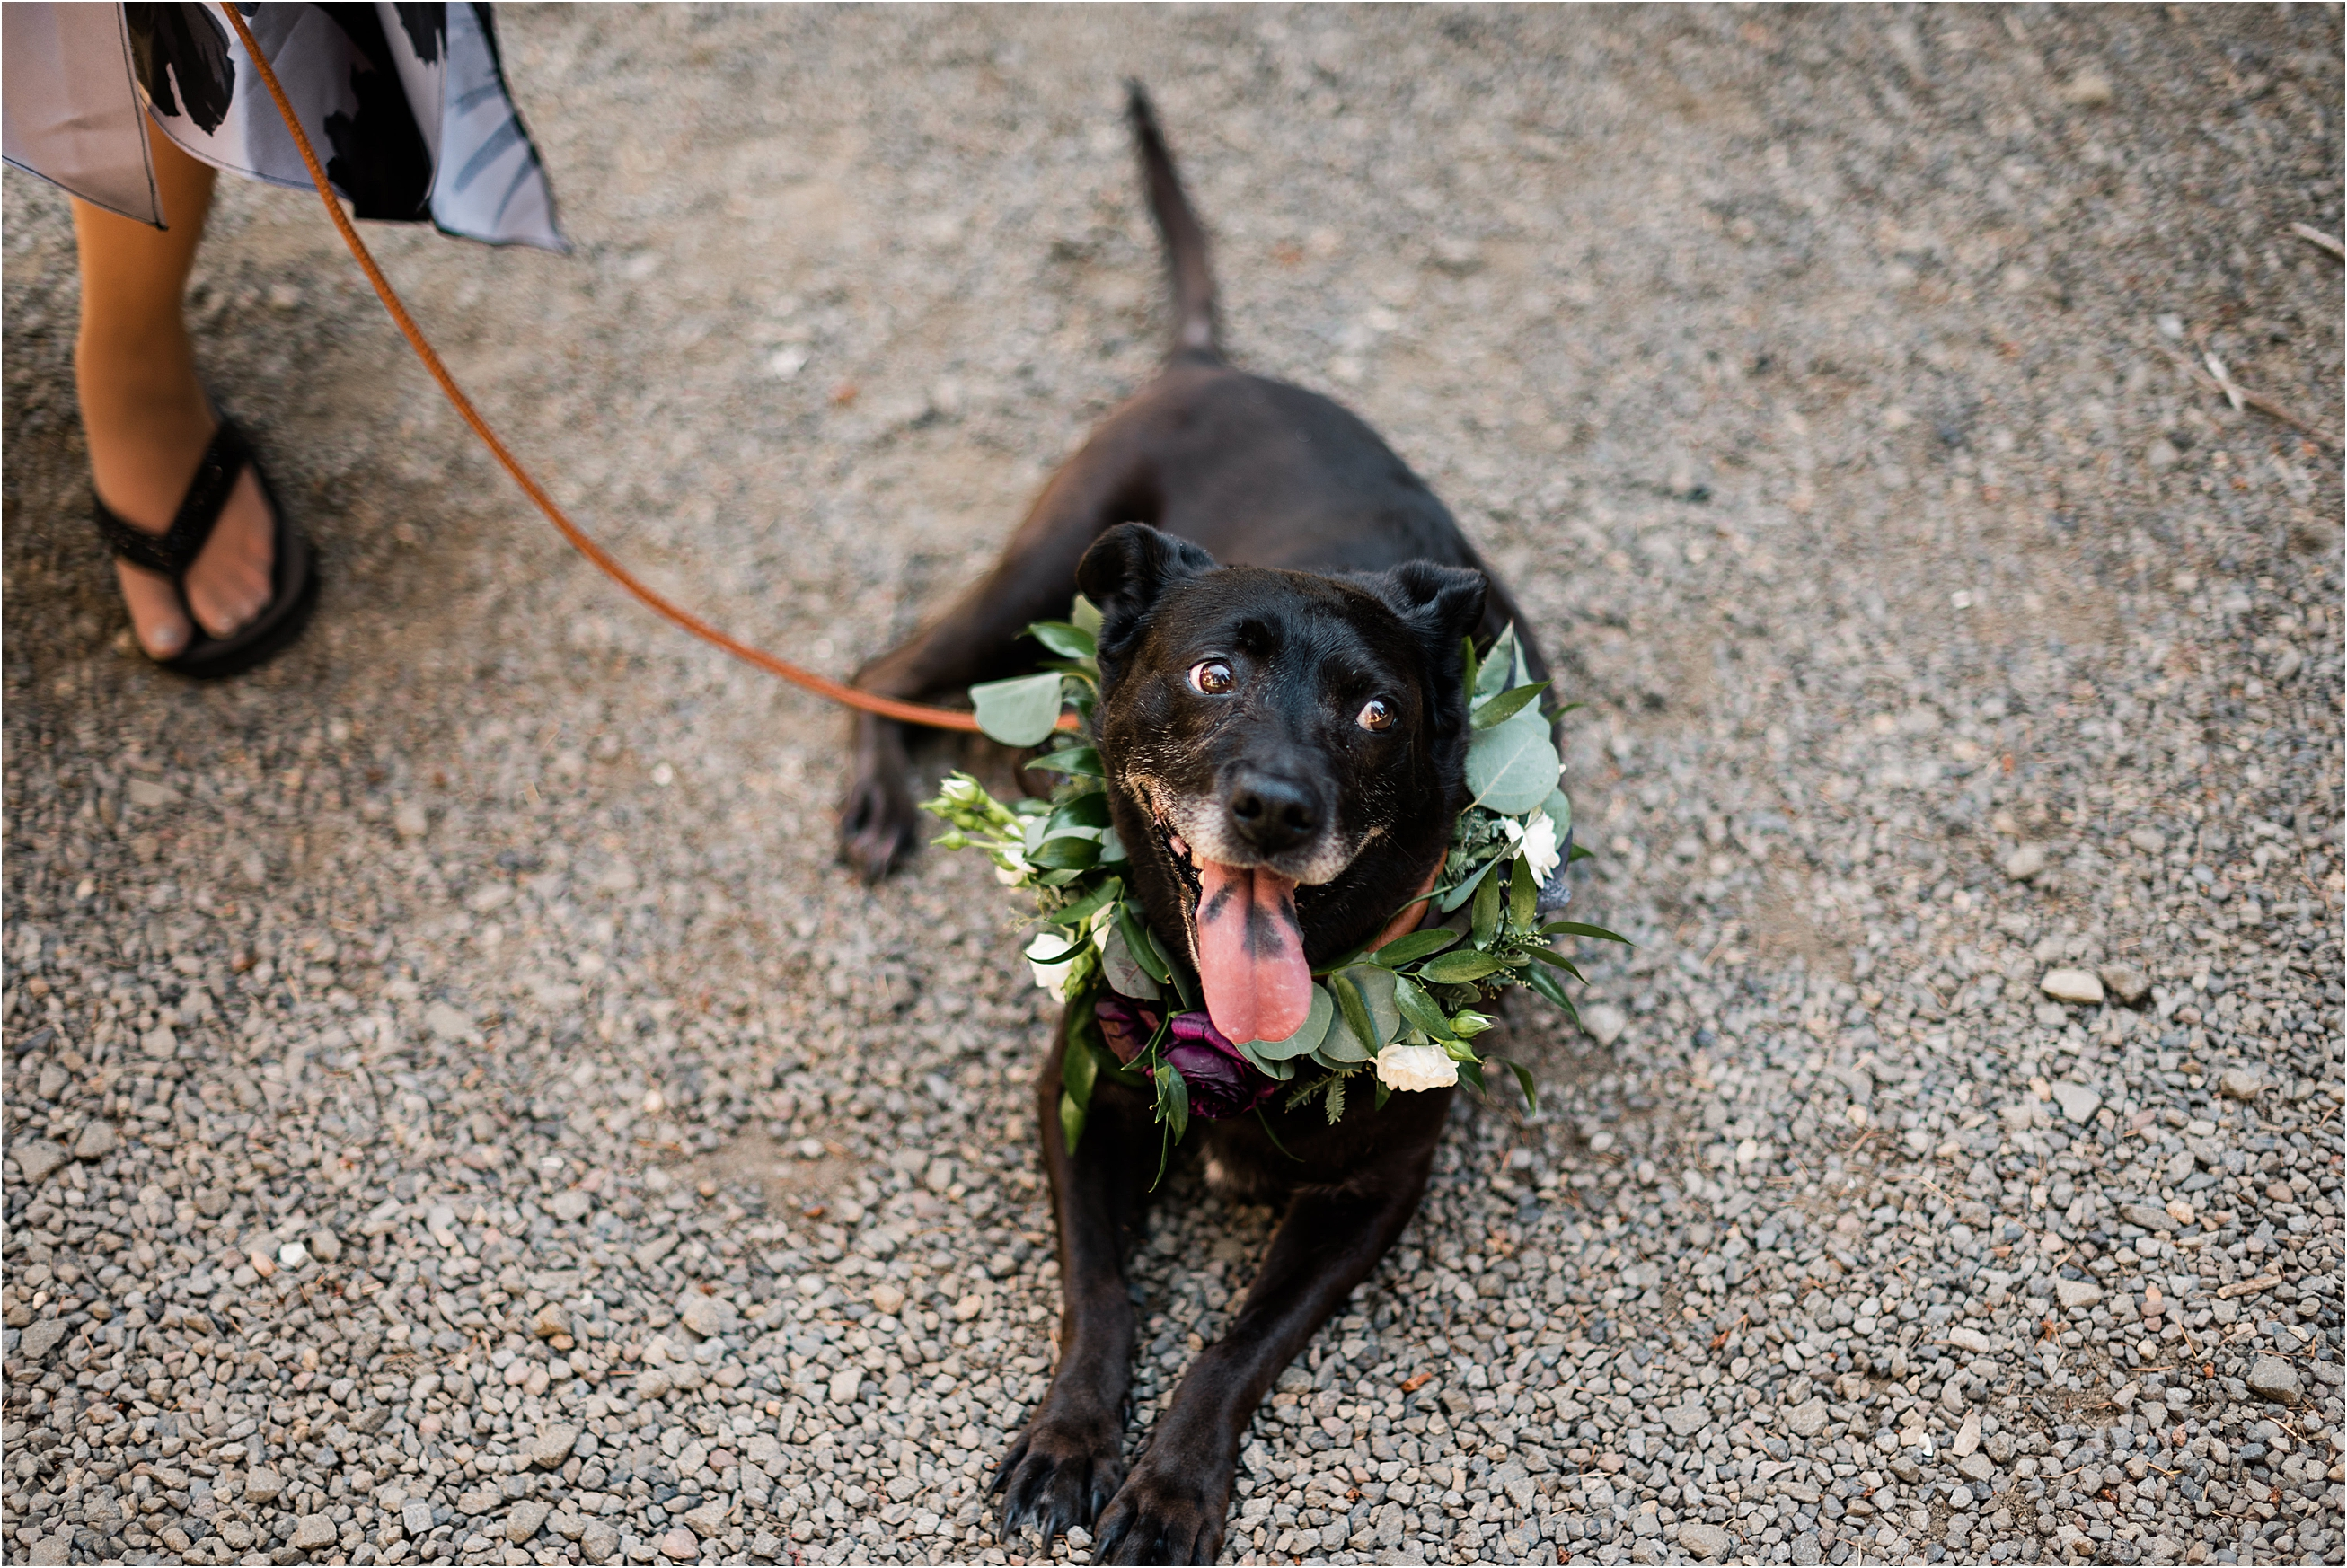 Stella, the flower dog at Cassy & Viva's bohemian Oregon destination wedding at Camp Lane. Image by Forthright Photo.